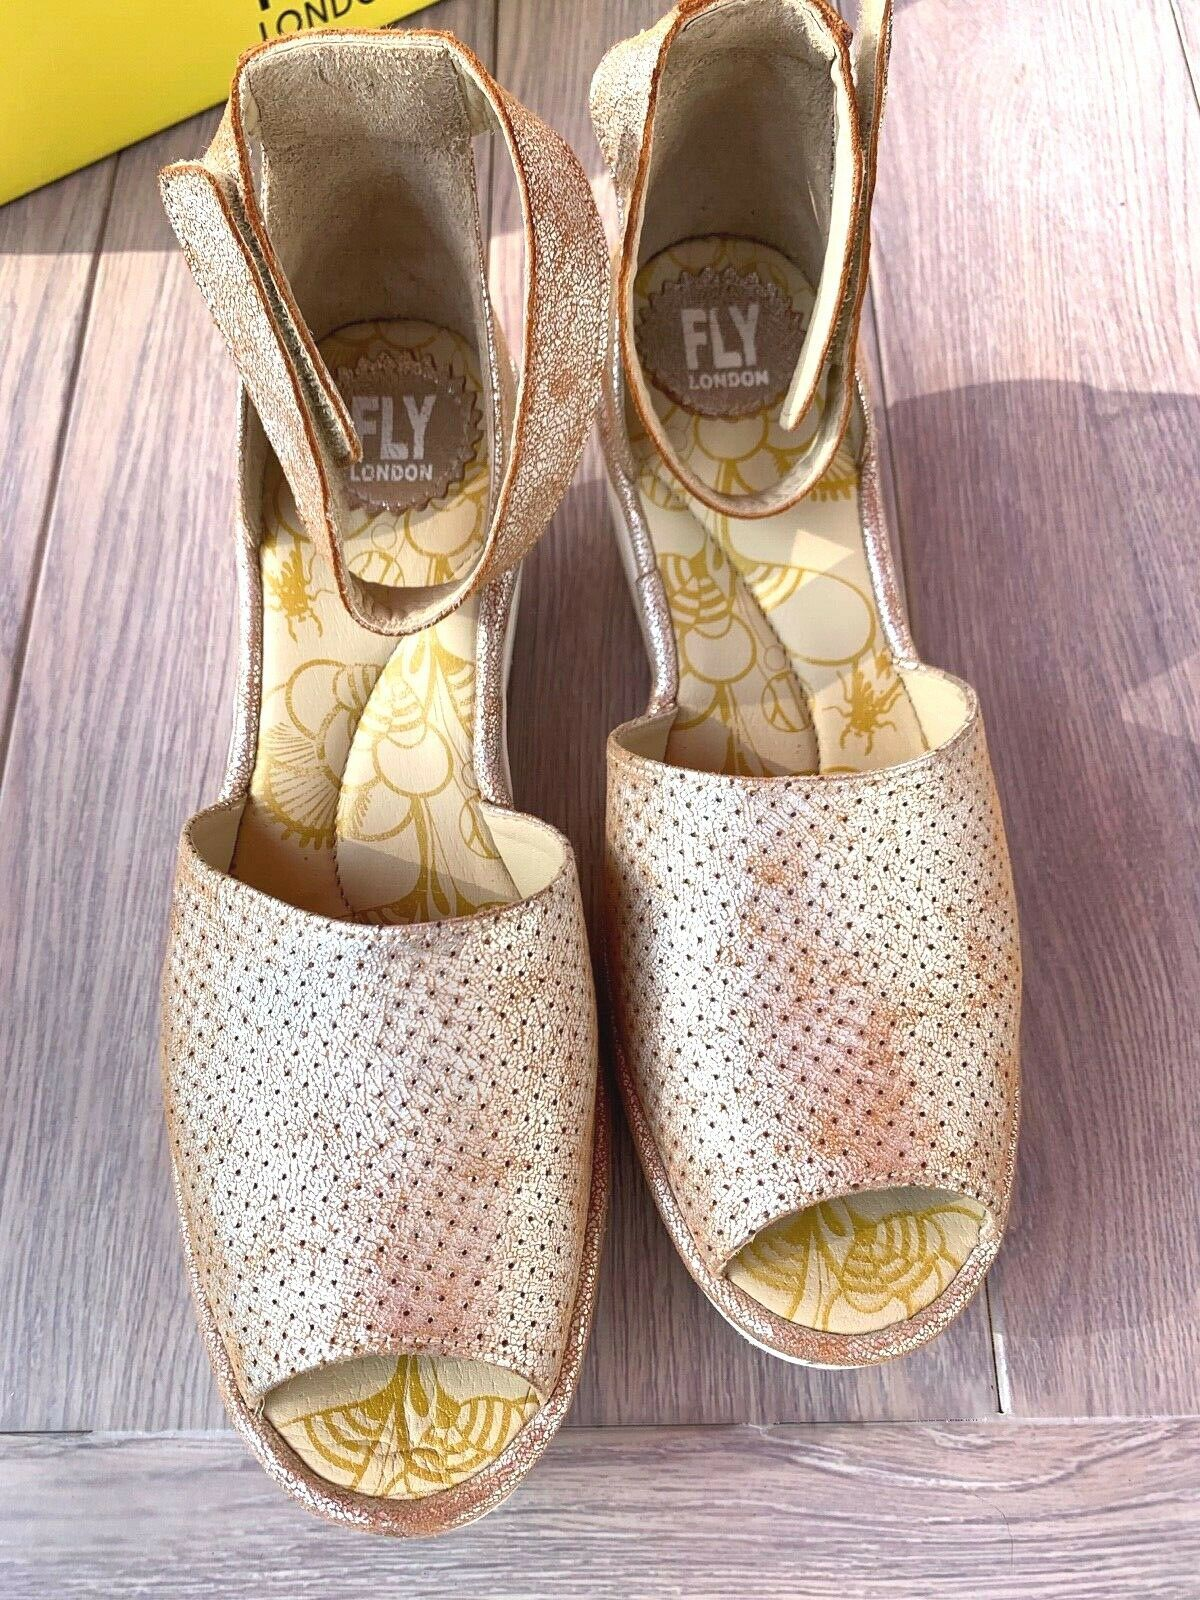 FLY London 40 9 9.5 pearl Perforated Leather Wedge Sandals Yake W Box Preowned image 4